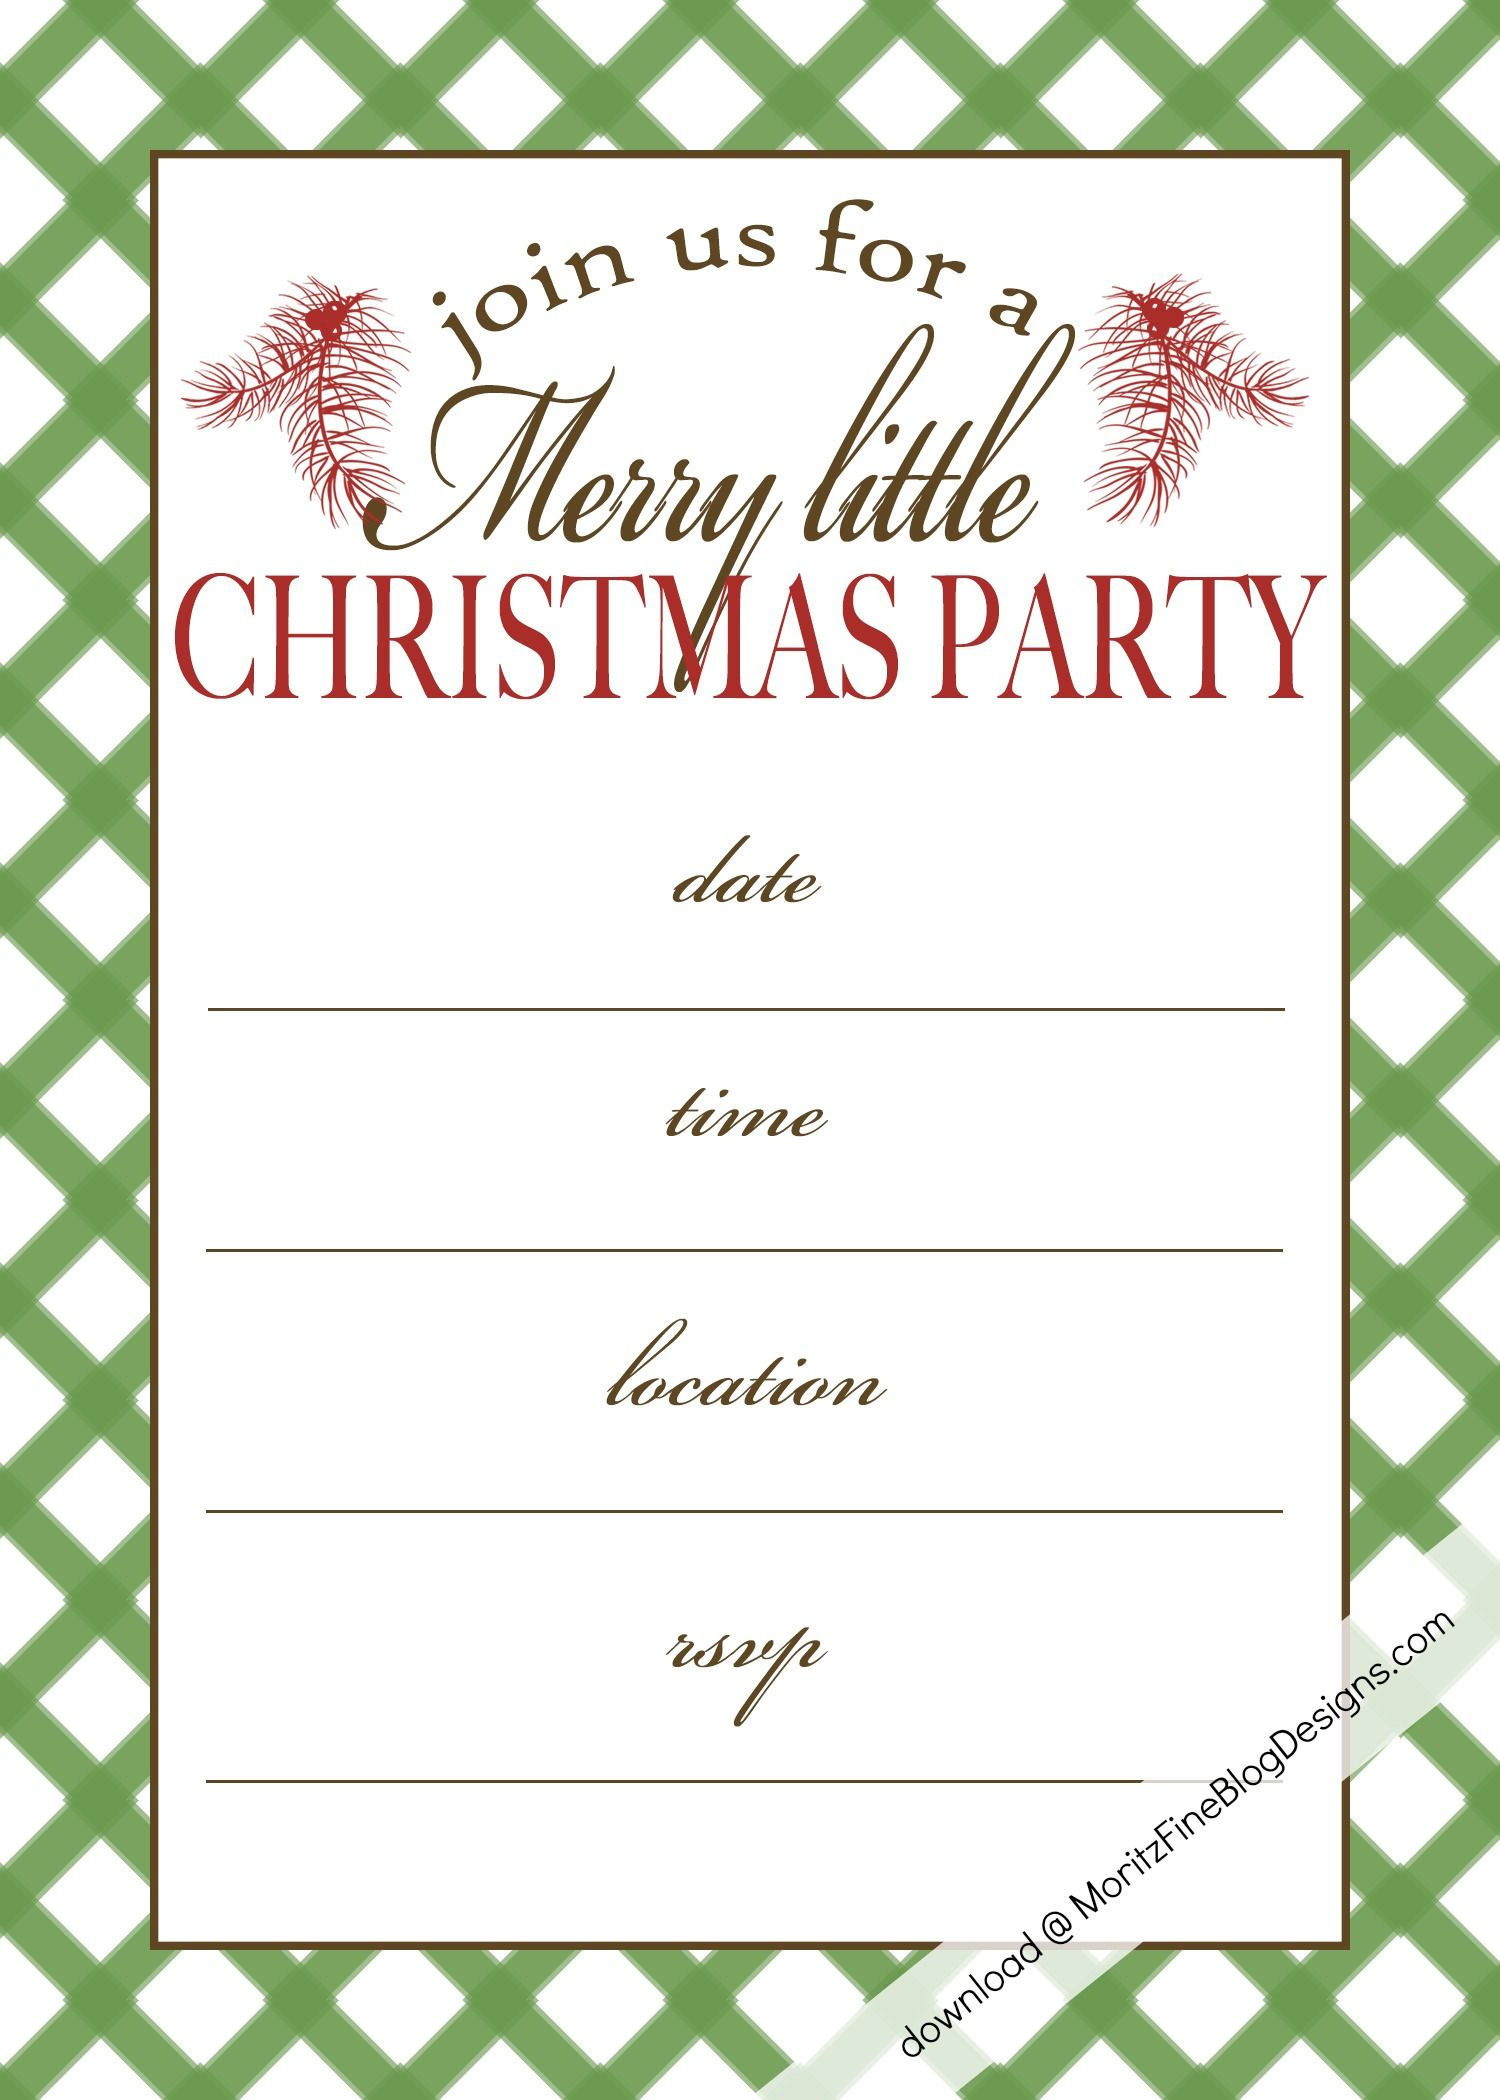 Free Printable Christmas Party Invitation | Christmas:print - Free Printable Christmas Invitations